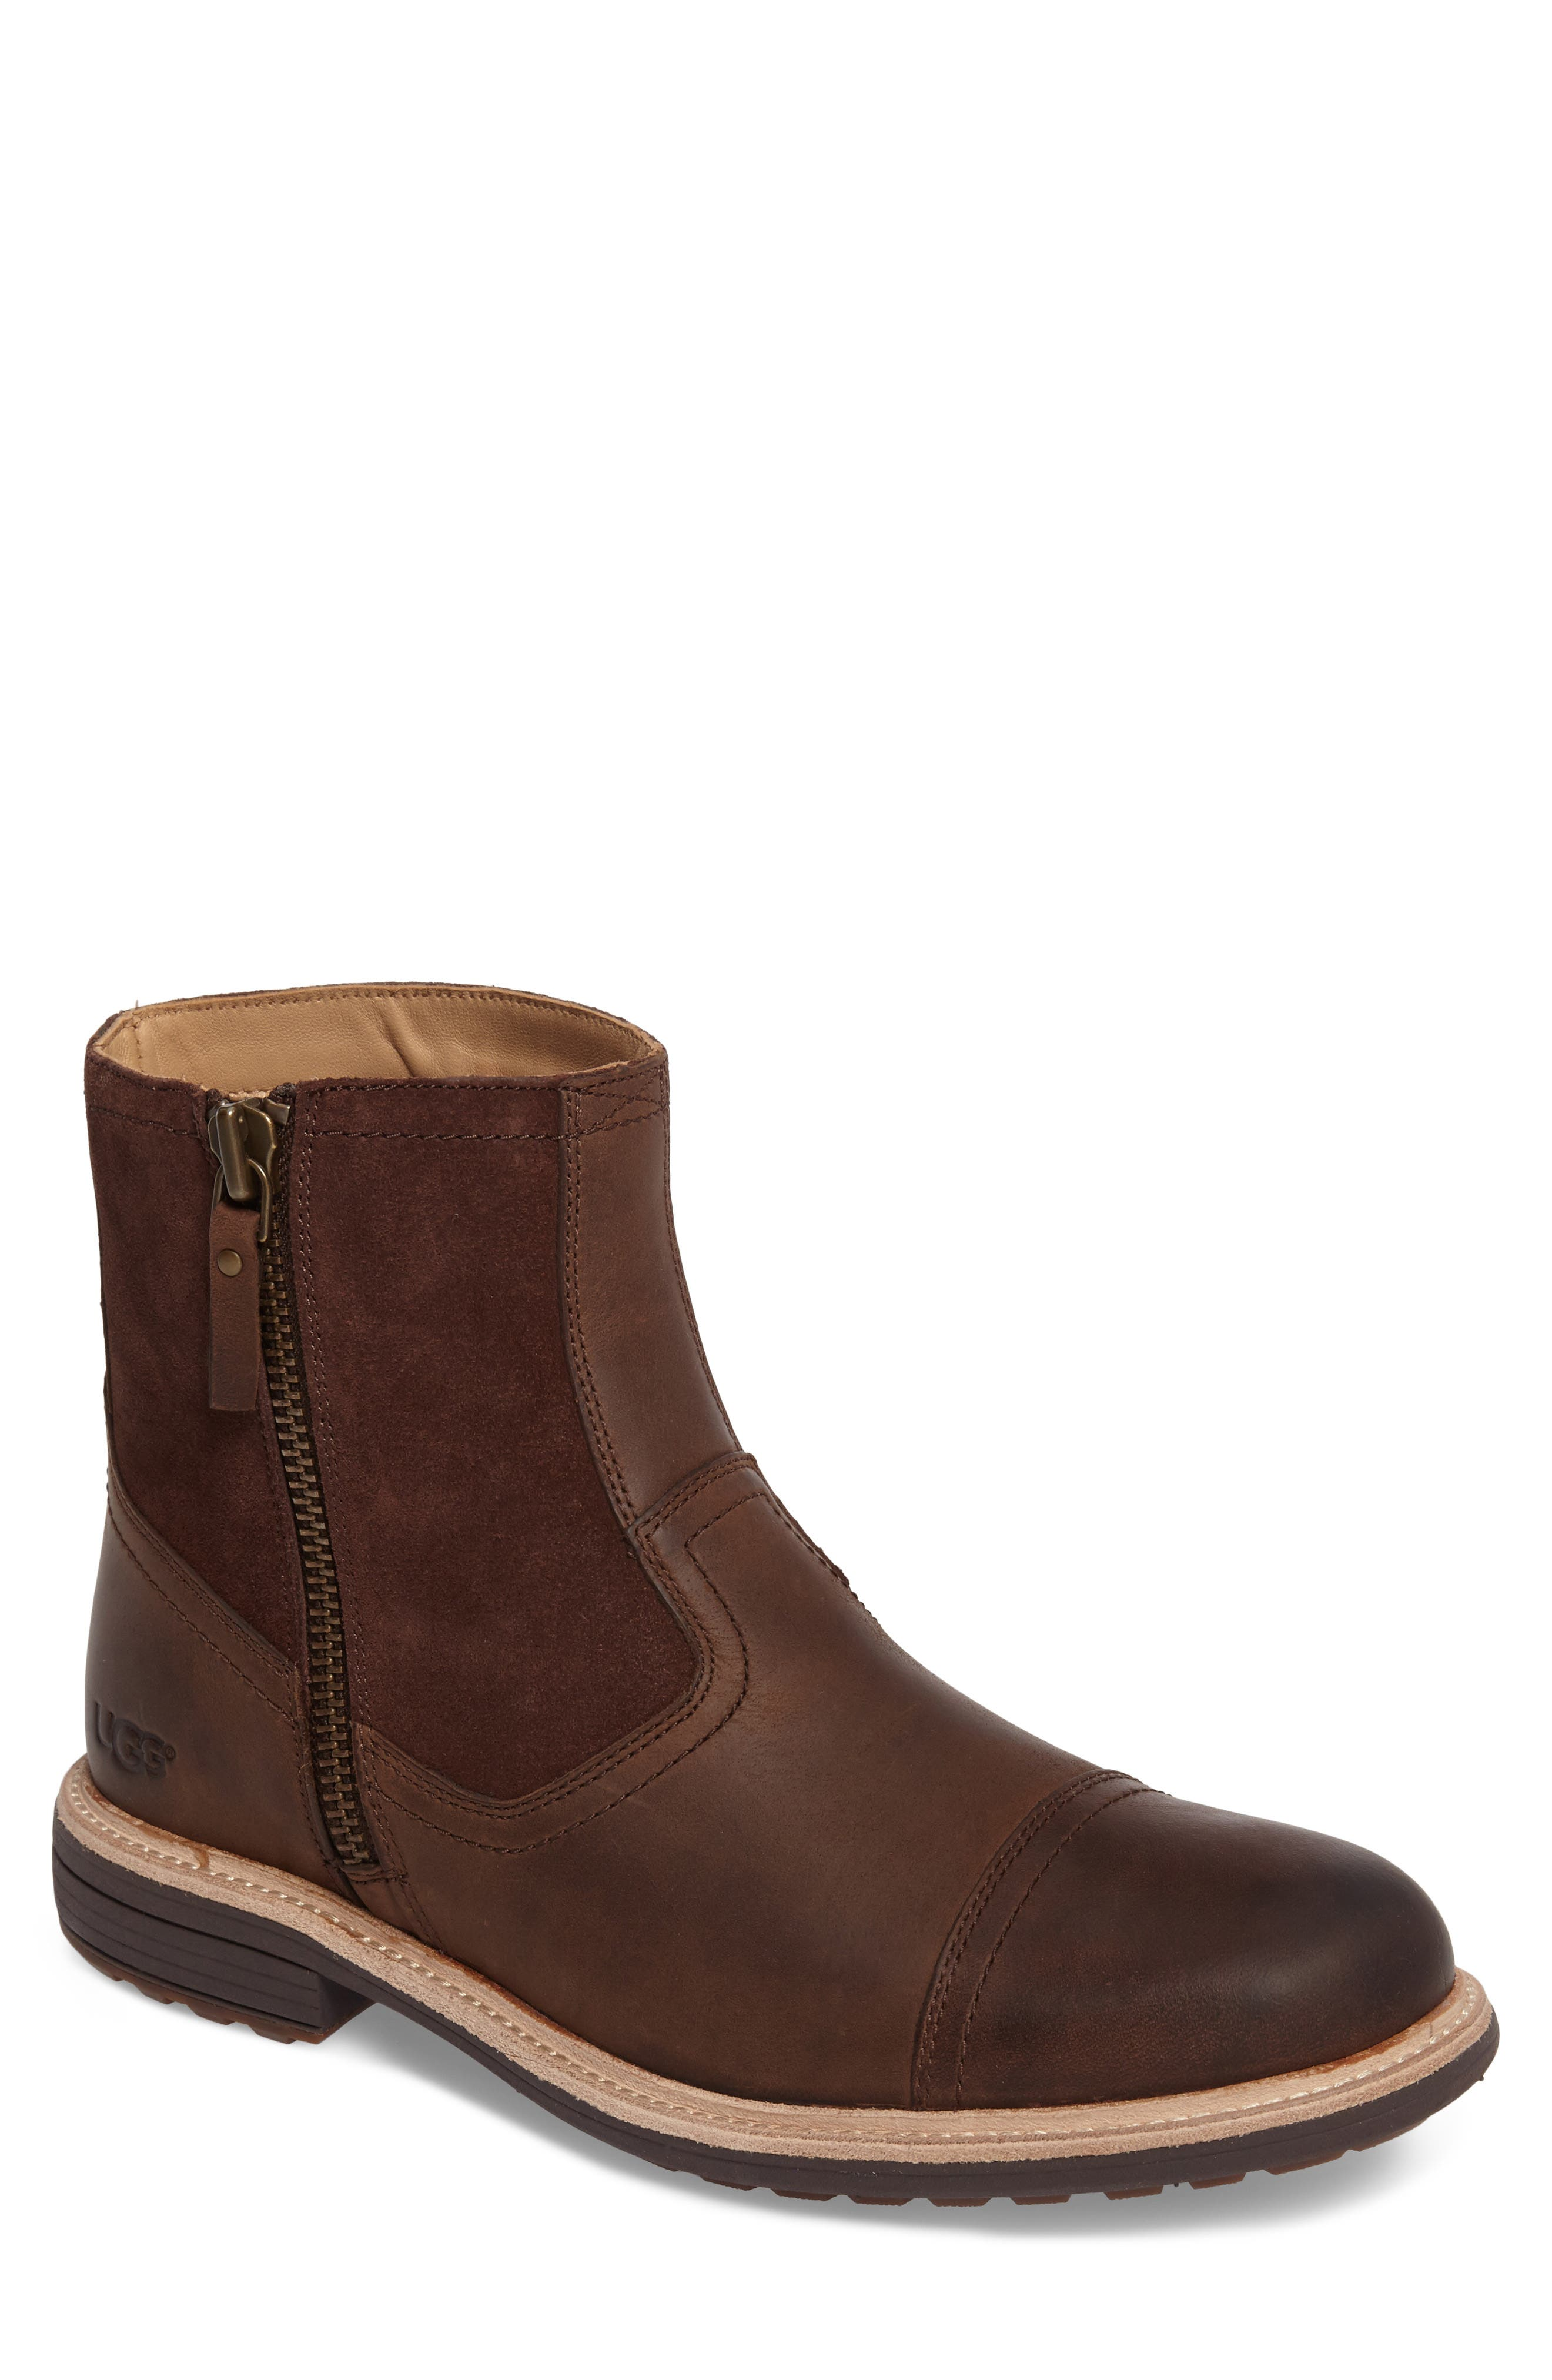 Dalvin Zip Boot with Genuine Shearling,                         Main,                         color, Grizzly